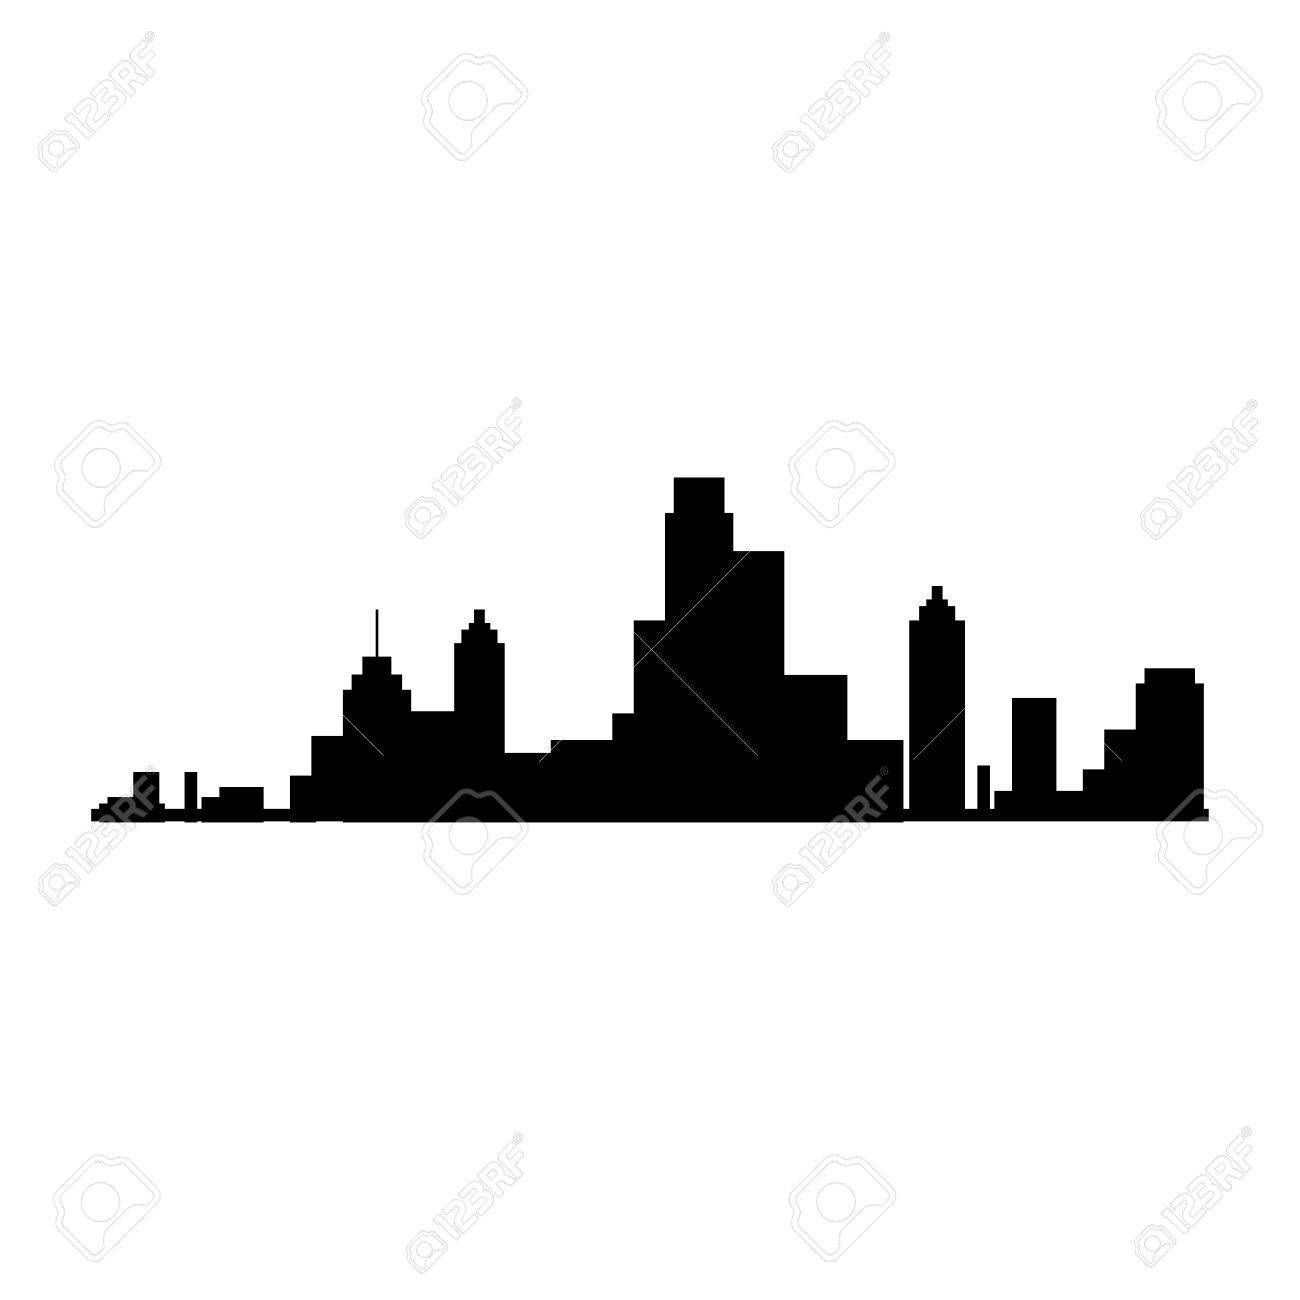 New York Silhouette City Building Skyline View Front Vector Illustration Isolated Stock